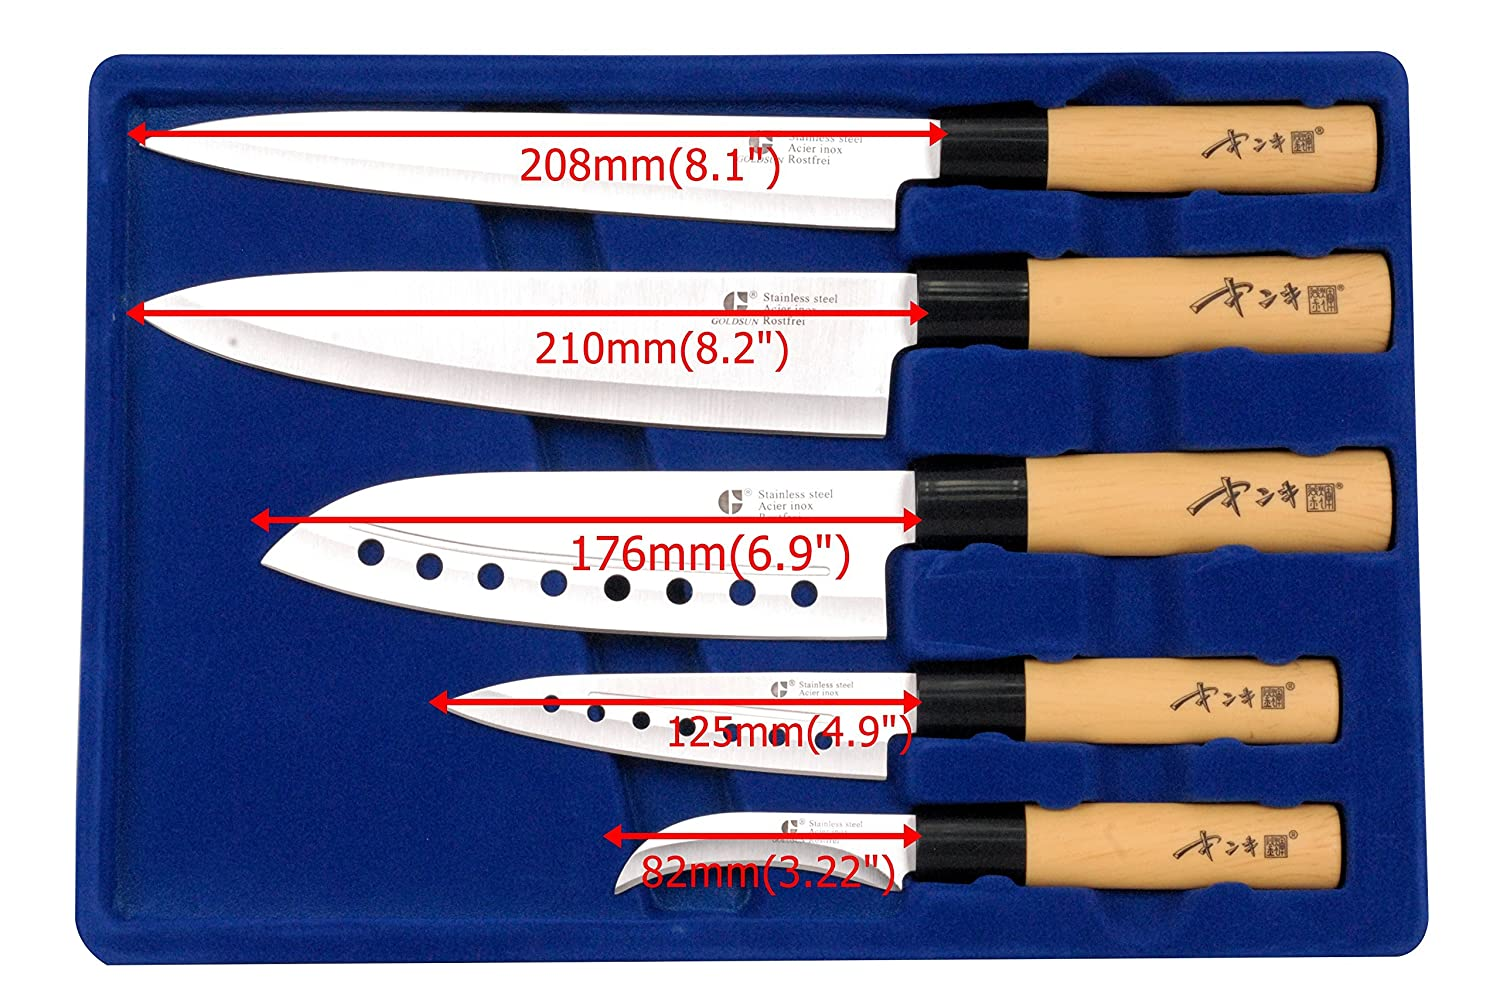 Amazon.com: goldsun acero inoxidable de Chef japonés Sashimi ...